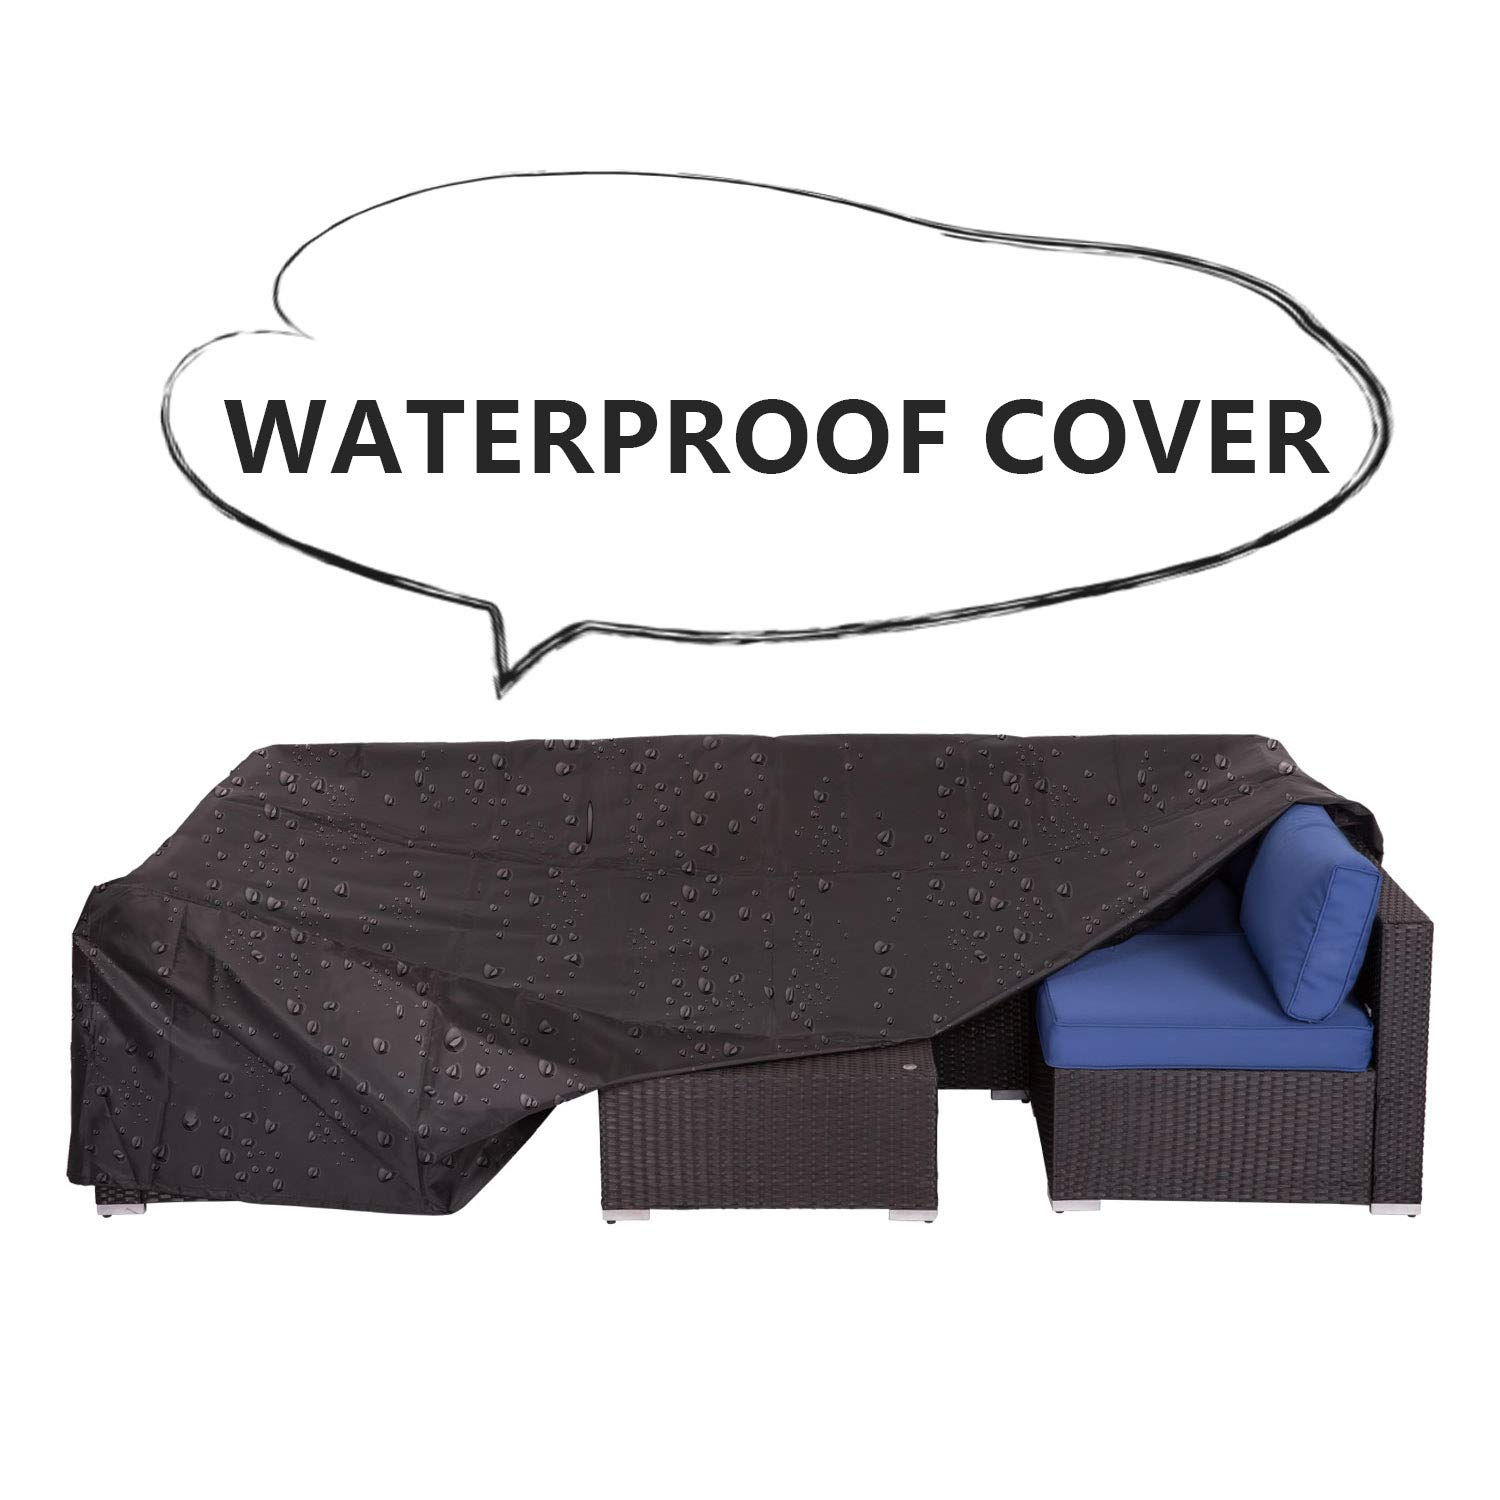 Peach Tree 7Pcs Wicker Rattan Sofa Weatherproof Protective Cover with Bag Black by Peachtree Press Inc